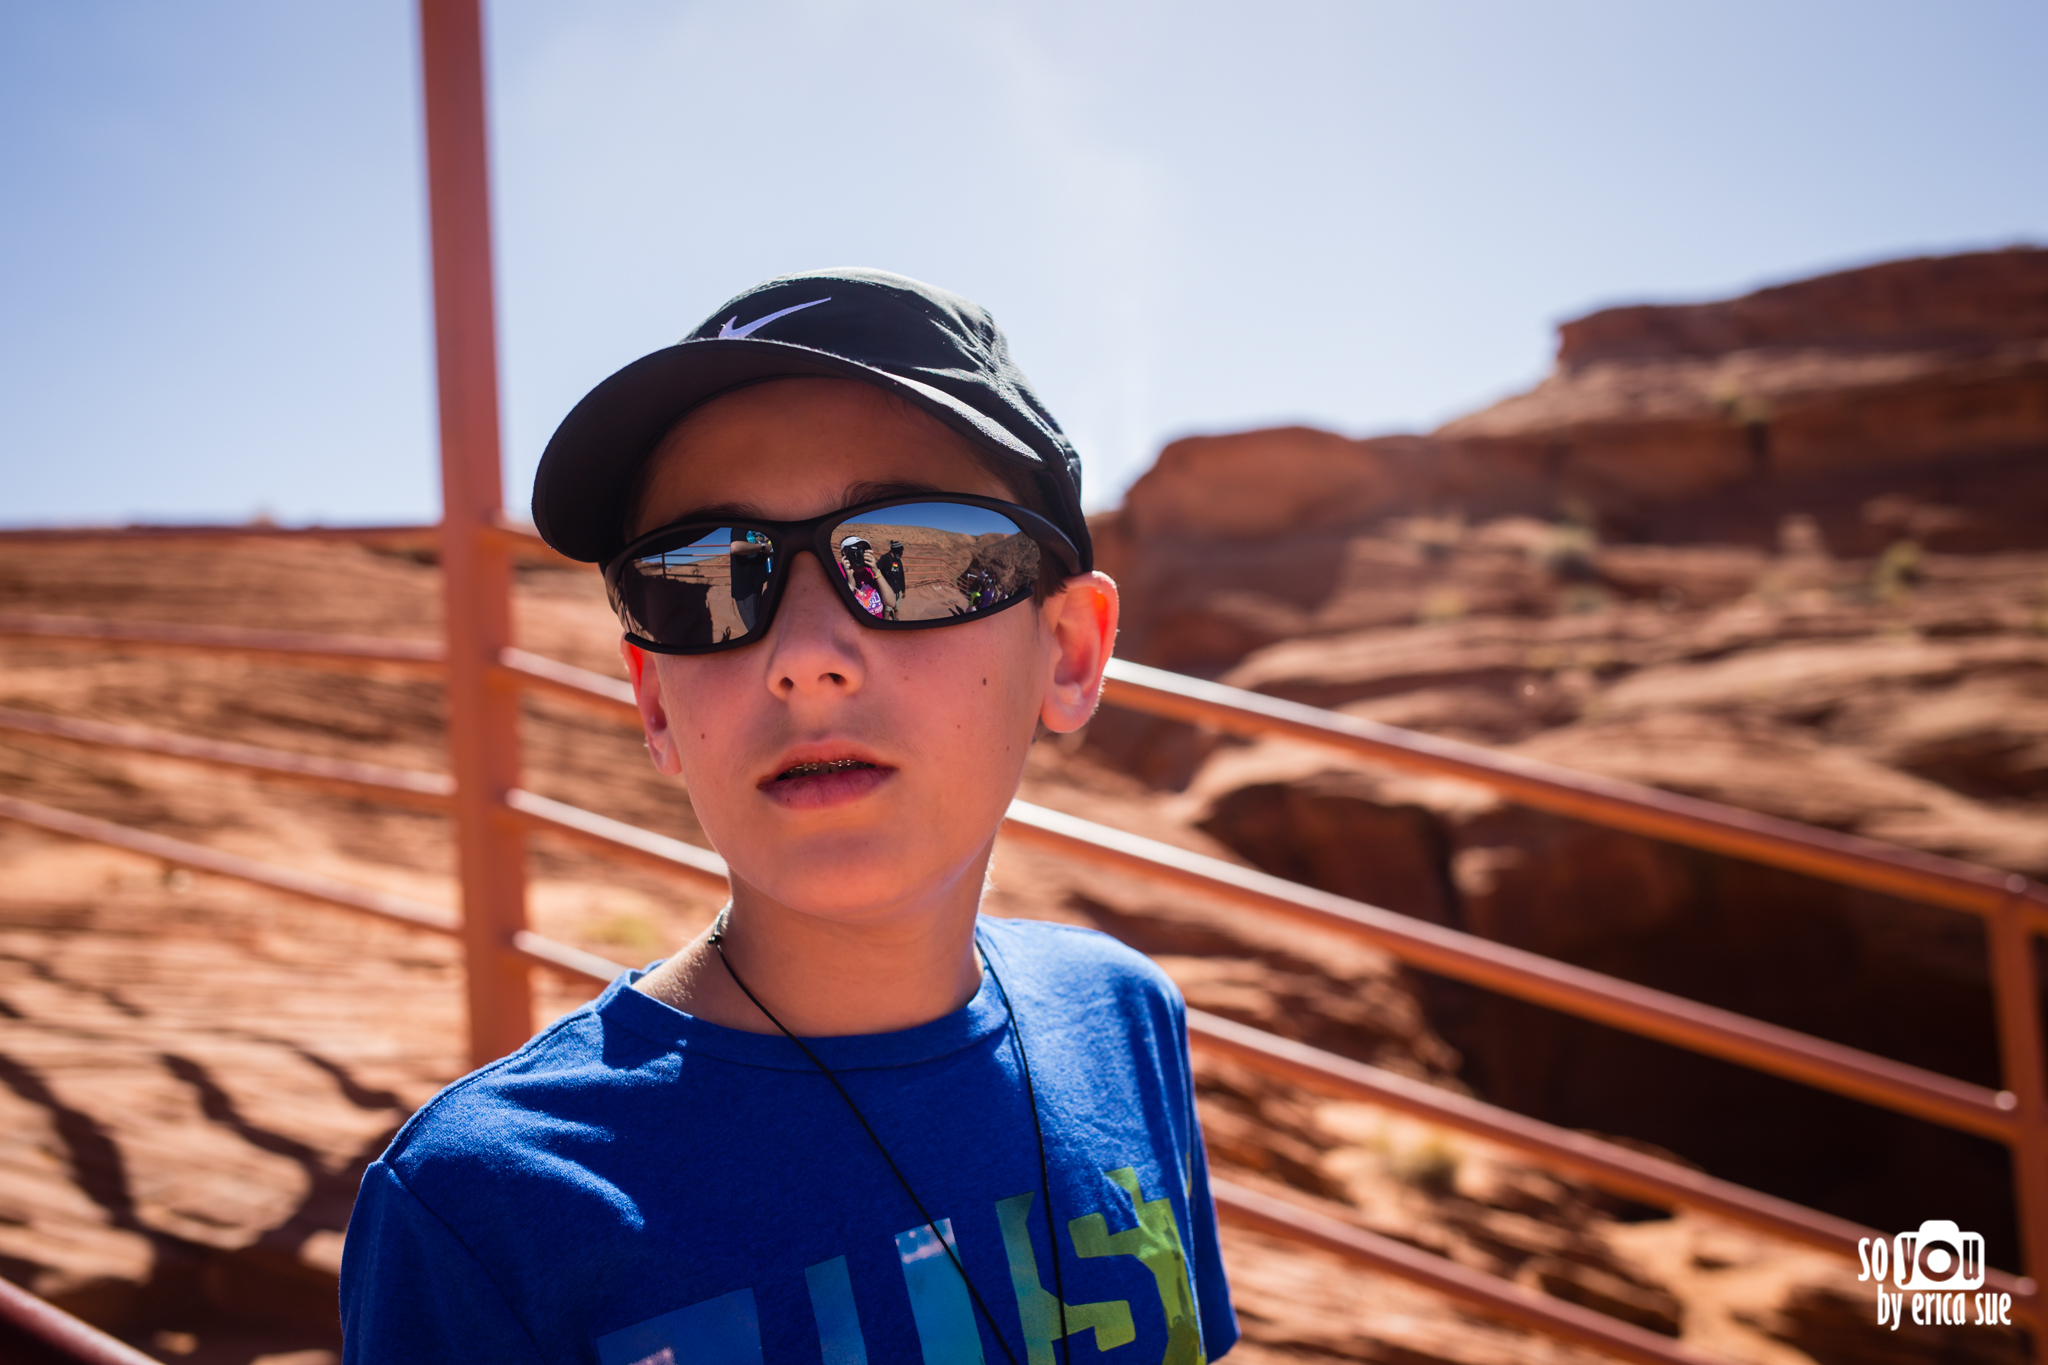 so-you-by-erica-sue-travel-grand-canyon-antelope-canyon-cosanti-arizona-9177.jpg